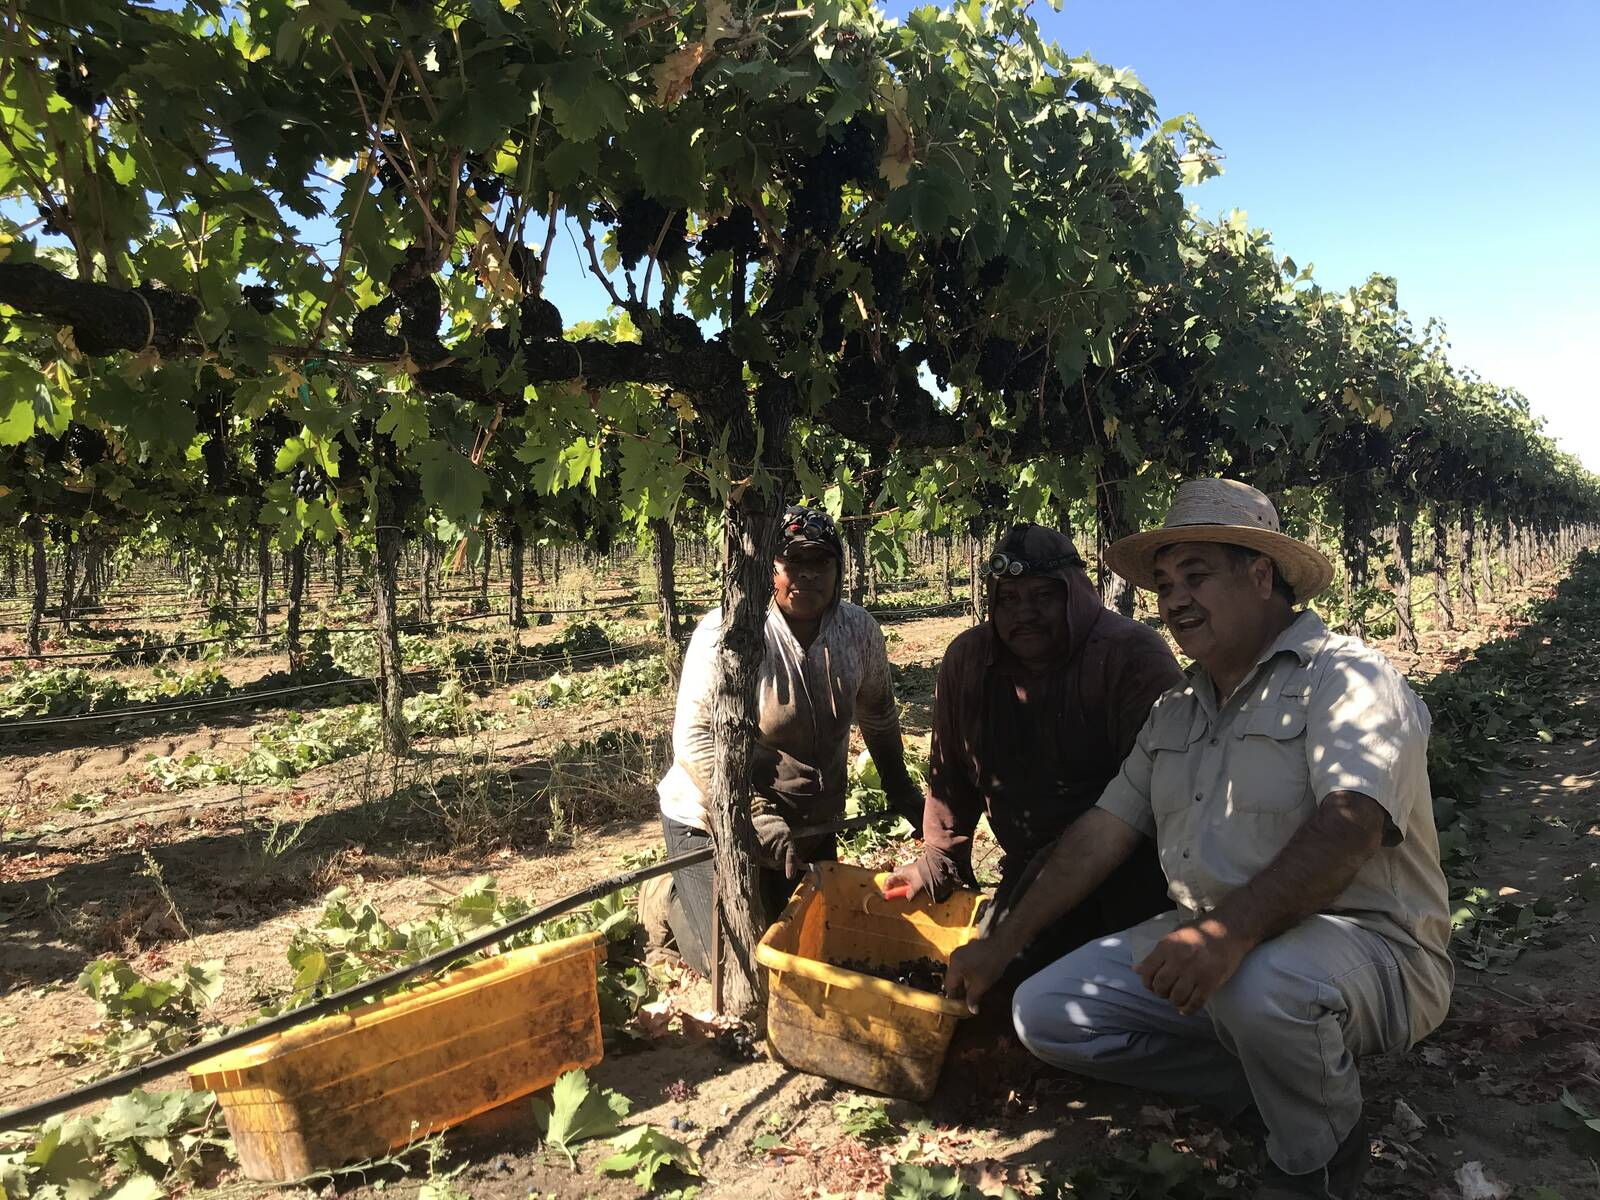 Luis Magaña, a long-time advocate for farmworkers' justice, spends much of his time doing outreach in the fields of the San Joaquin Valley. Courtesy of Luis Magaña